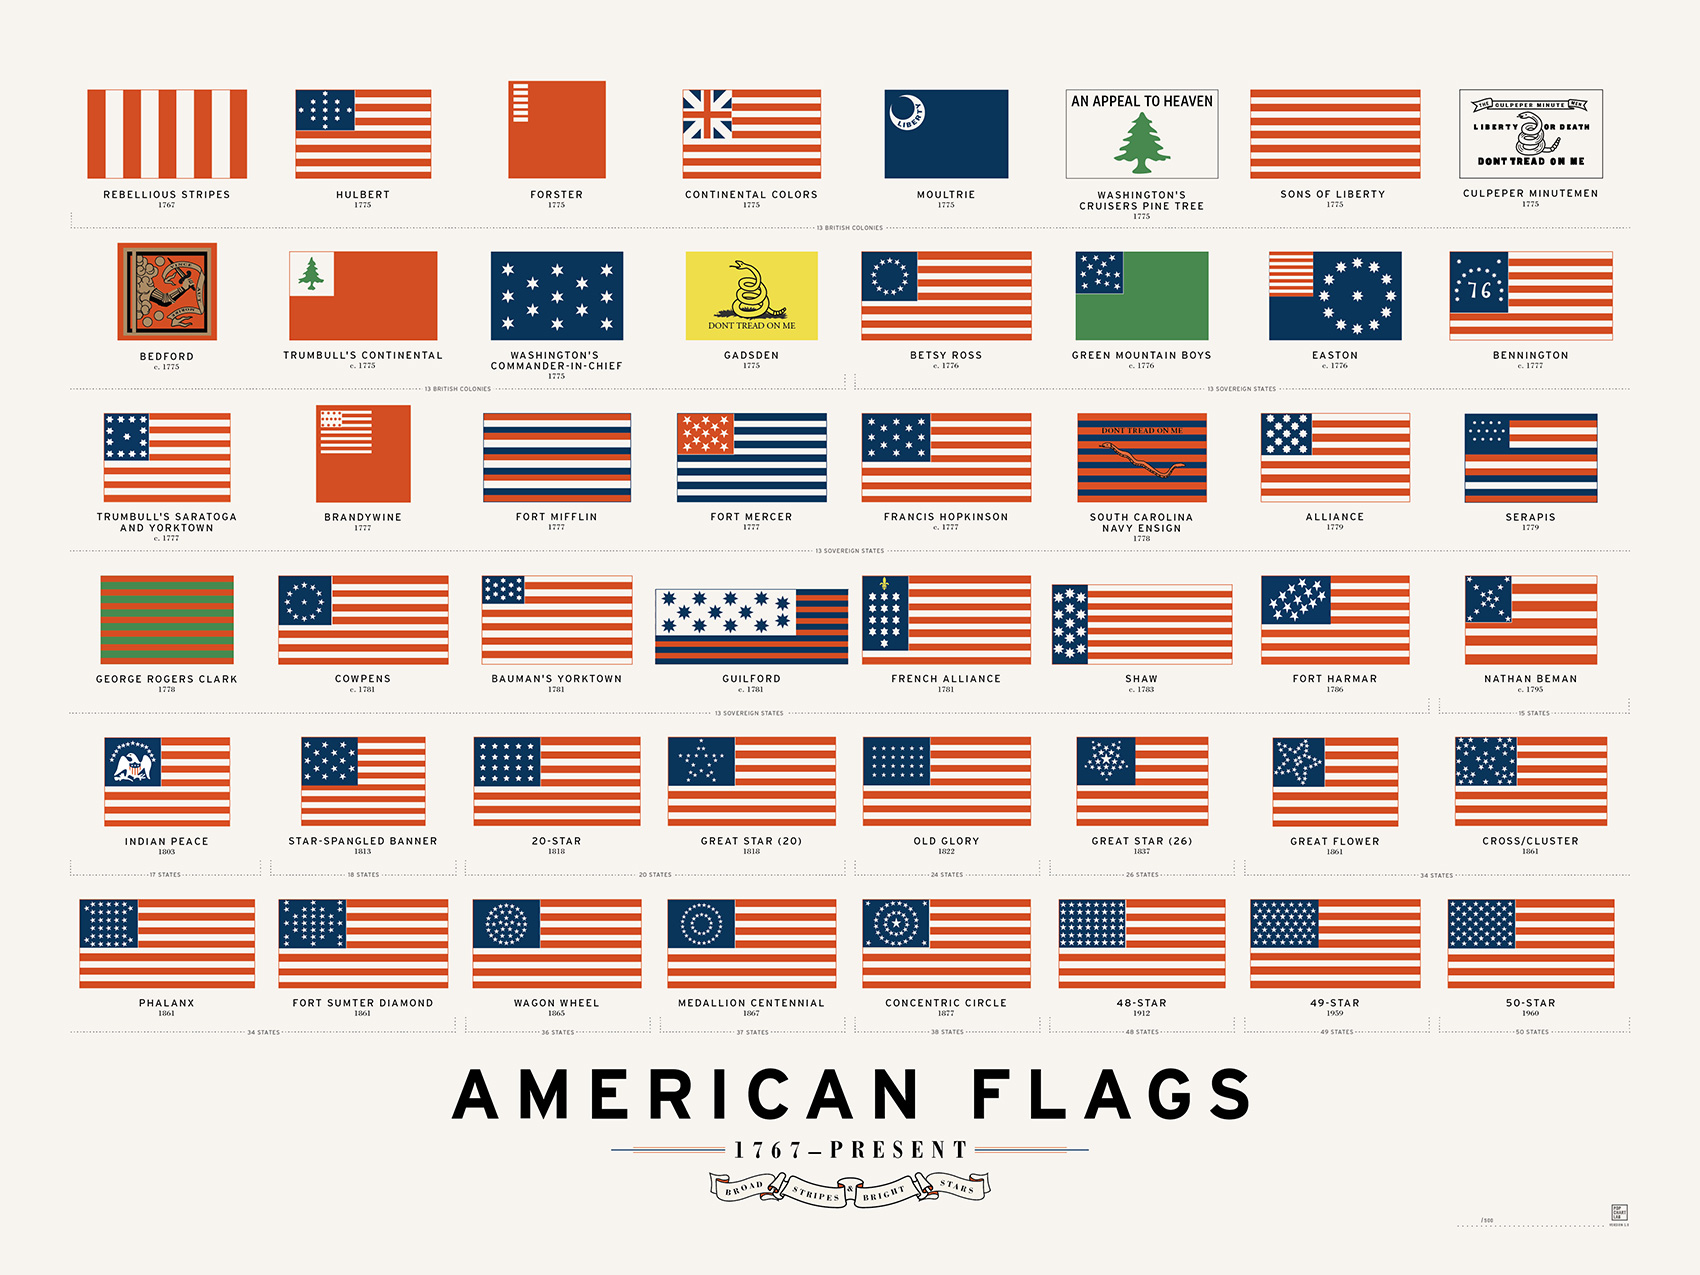 american-flags-1767-present